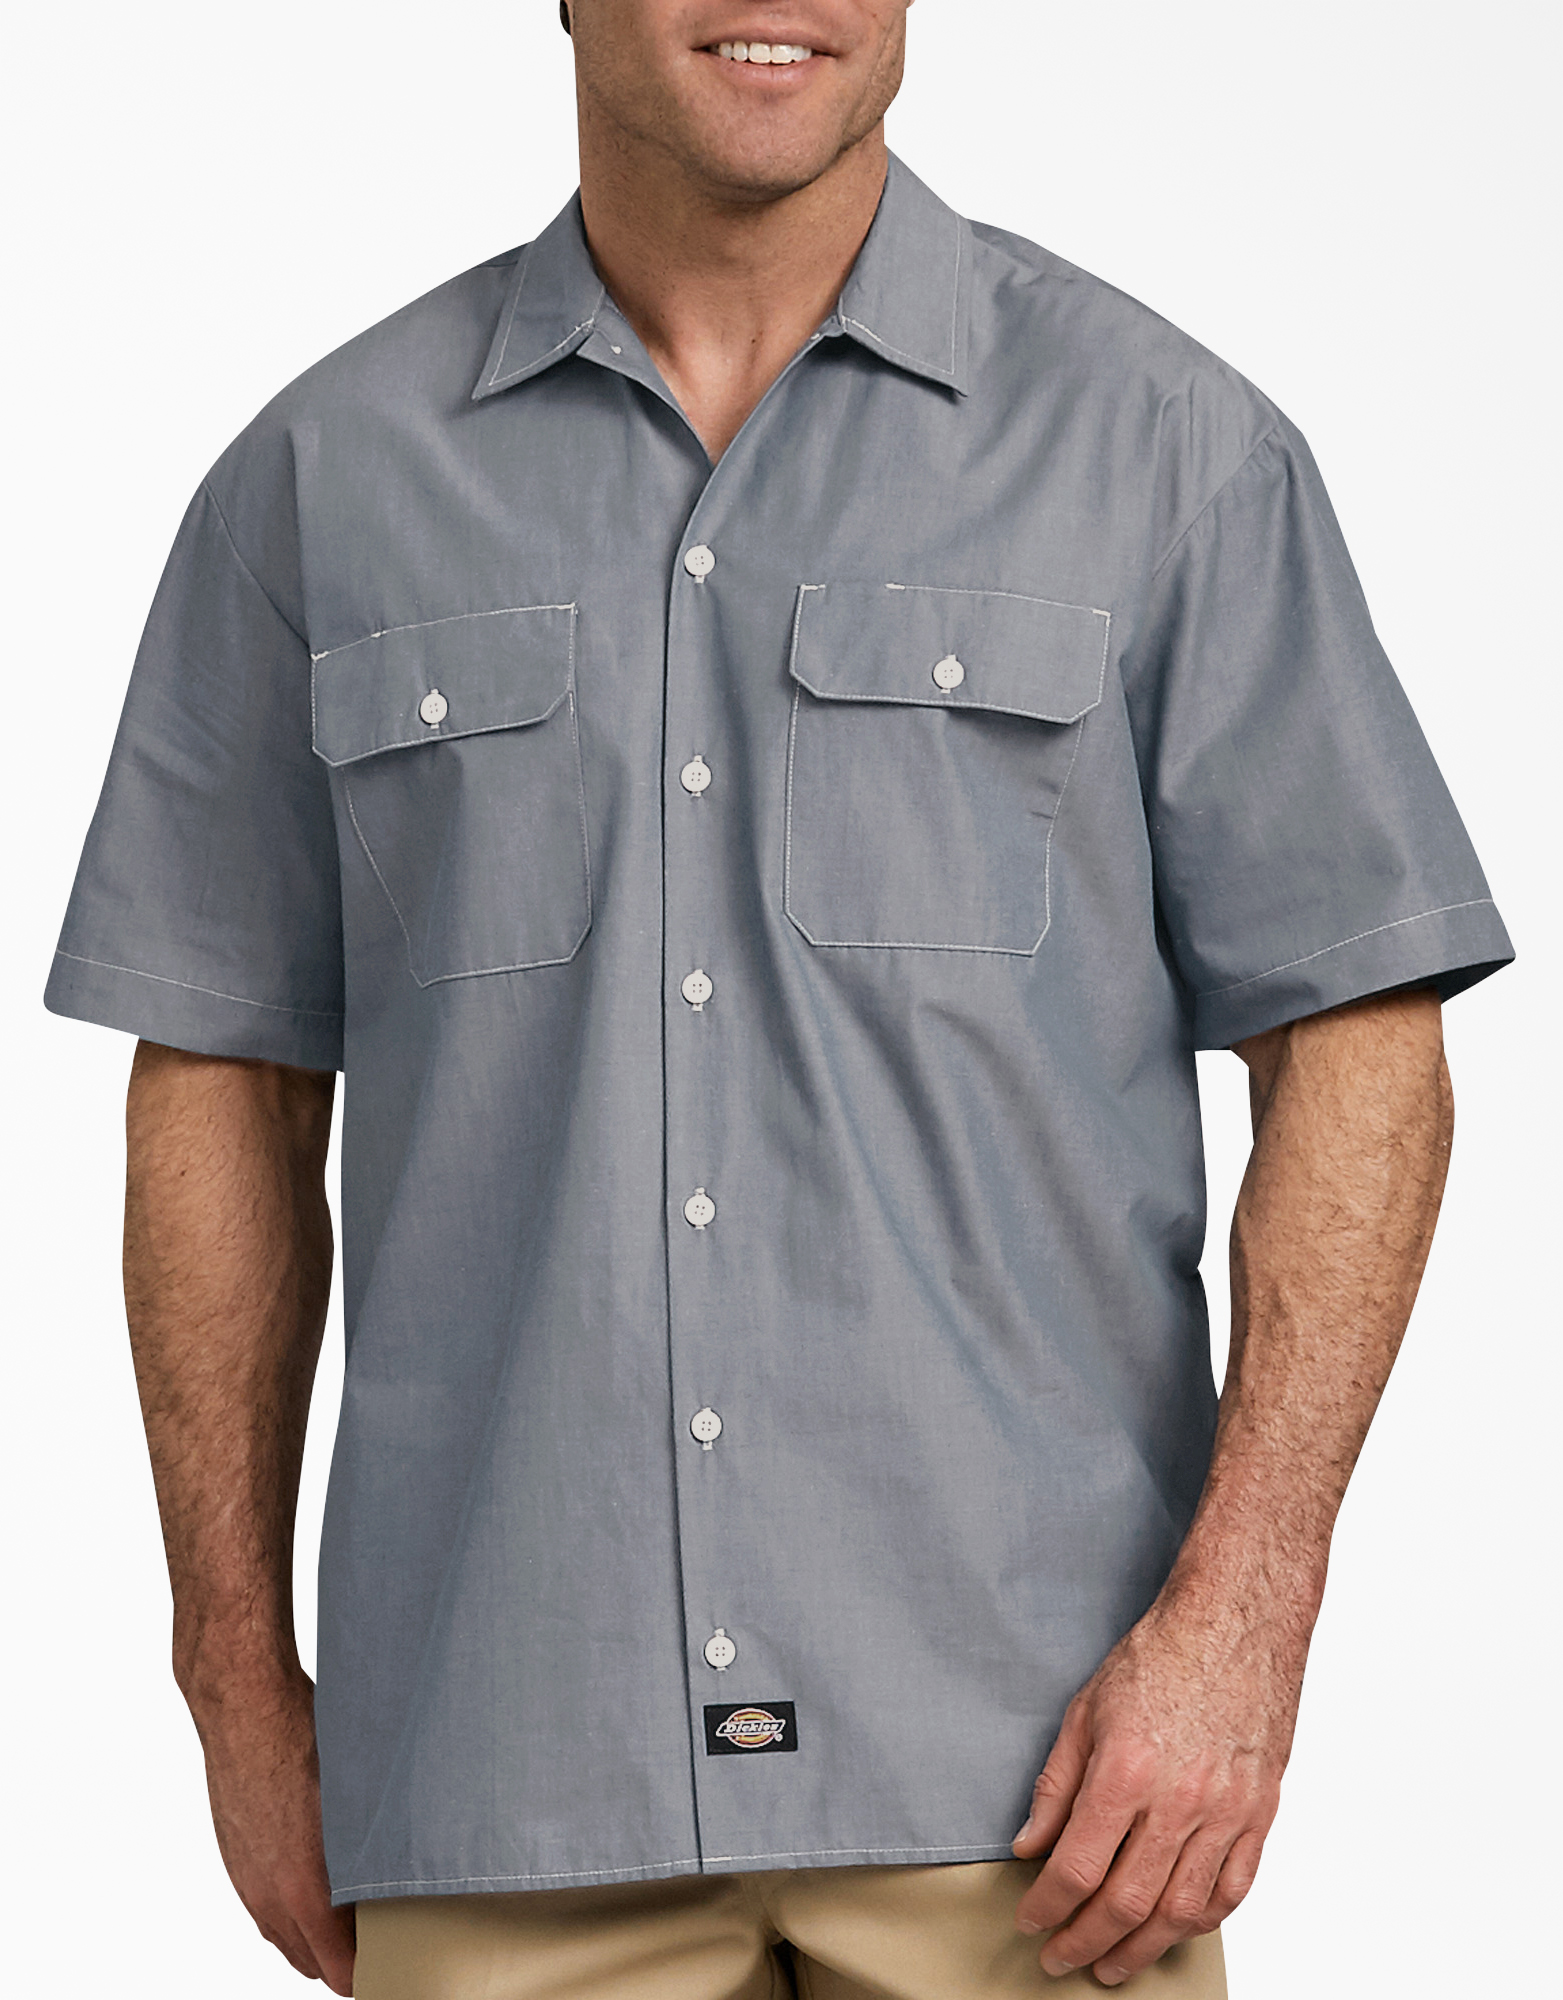 Relaxed Fit Short Sleeve Chambray Shirt - Navy Chambray (NVC)